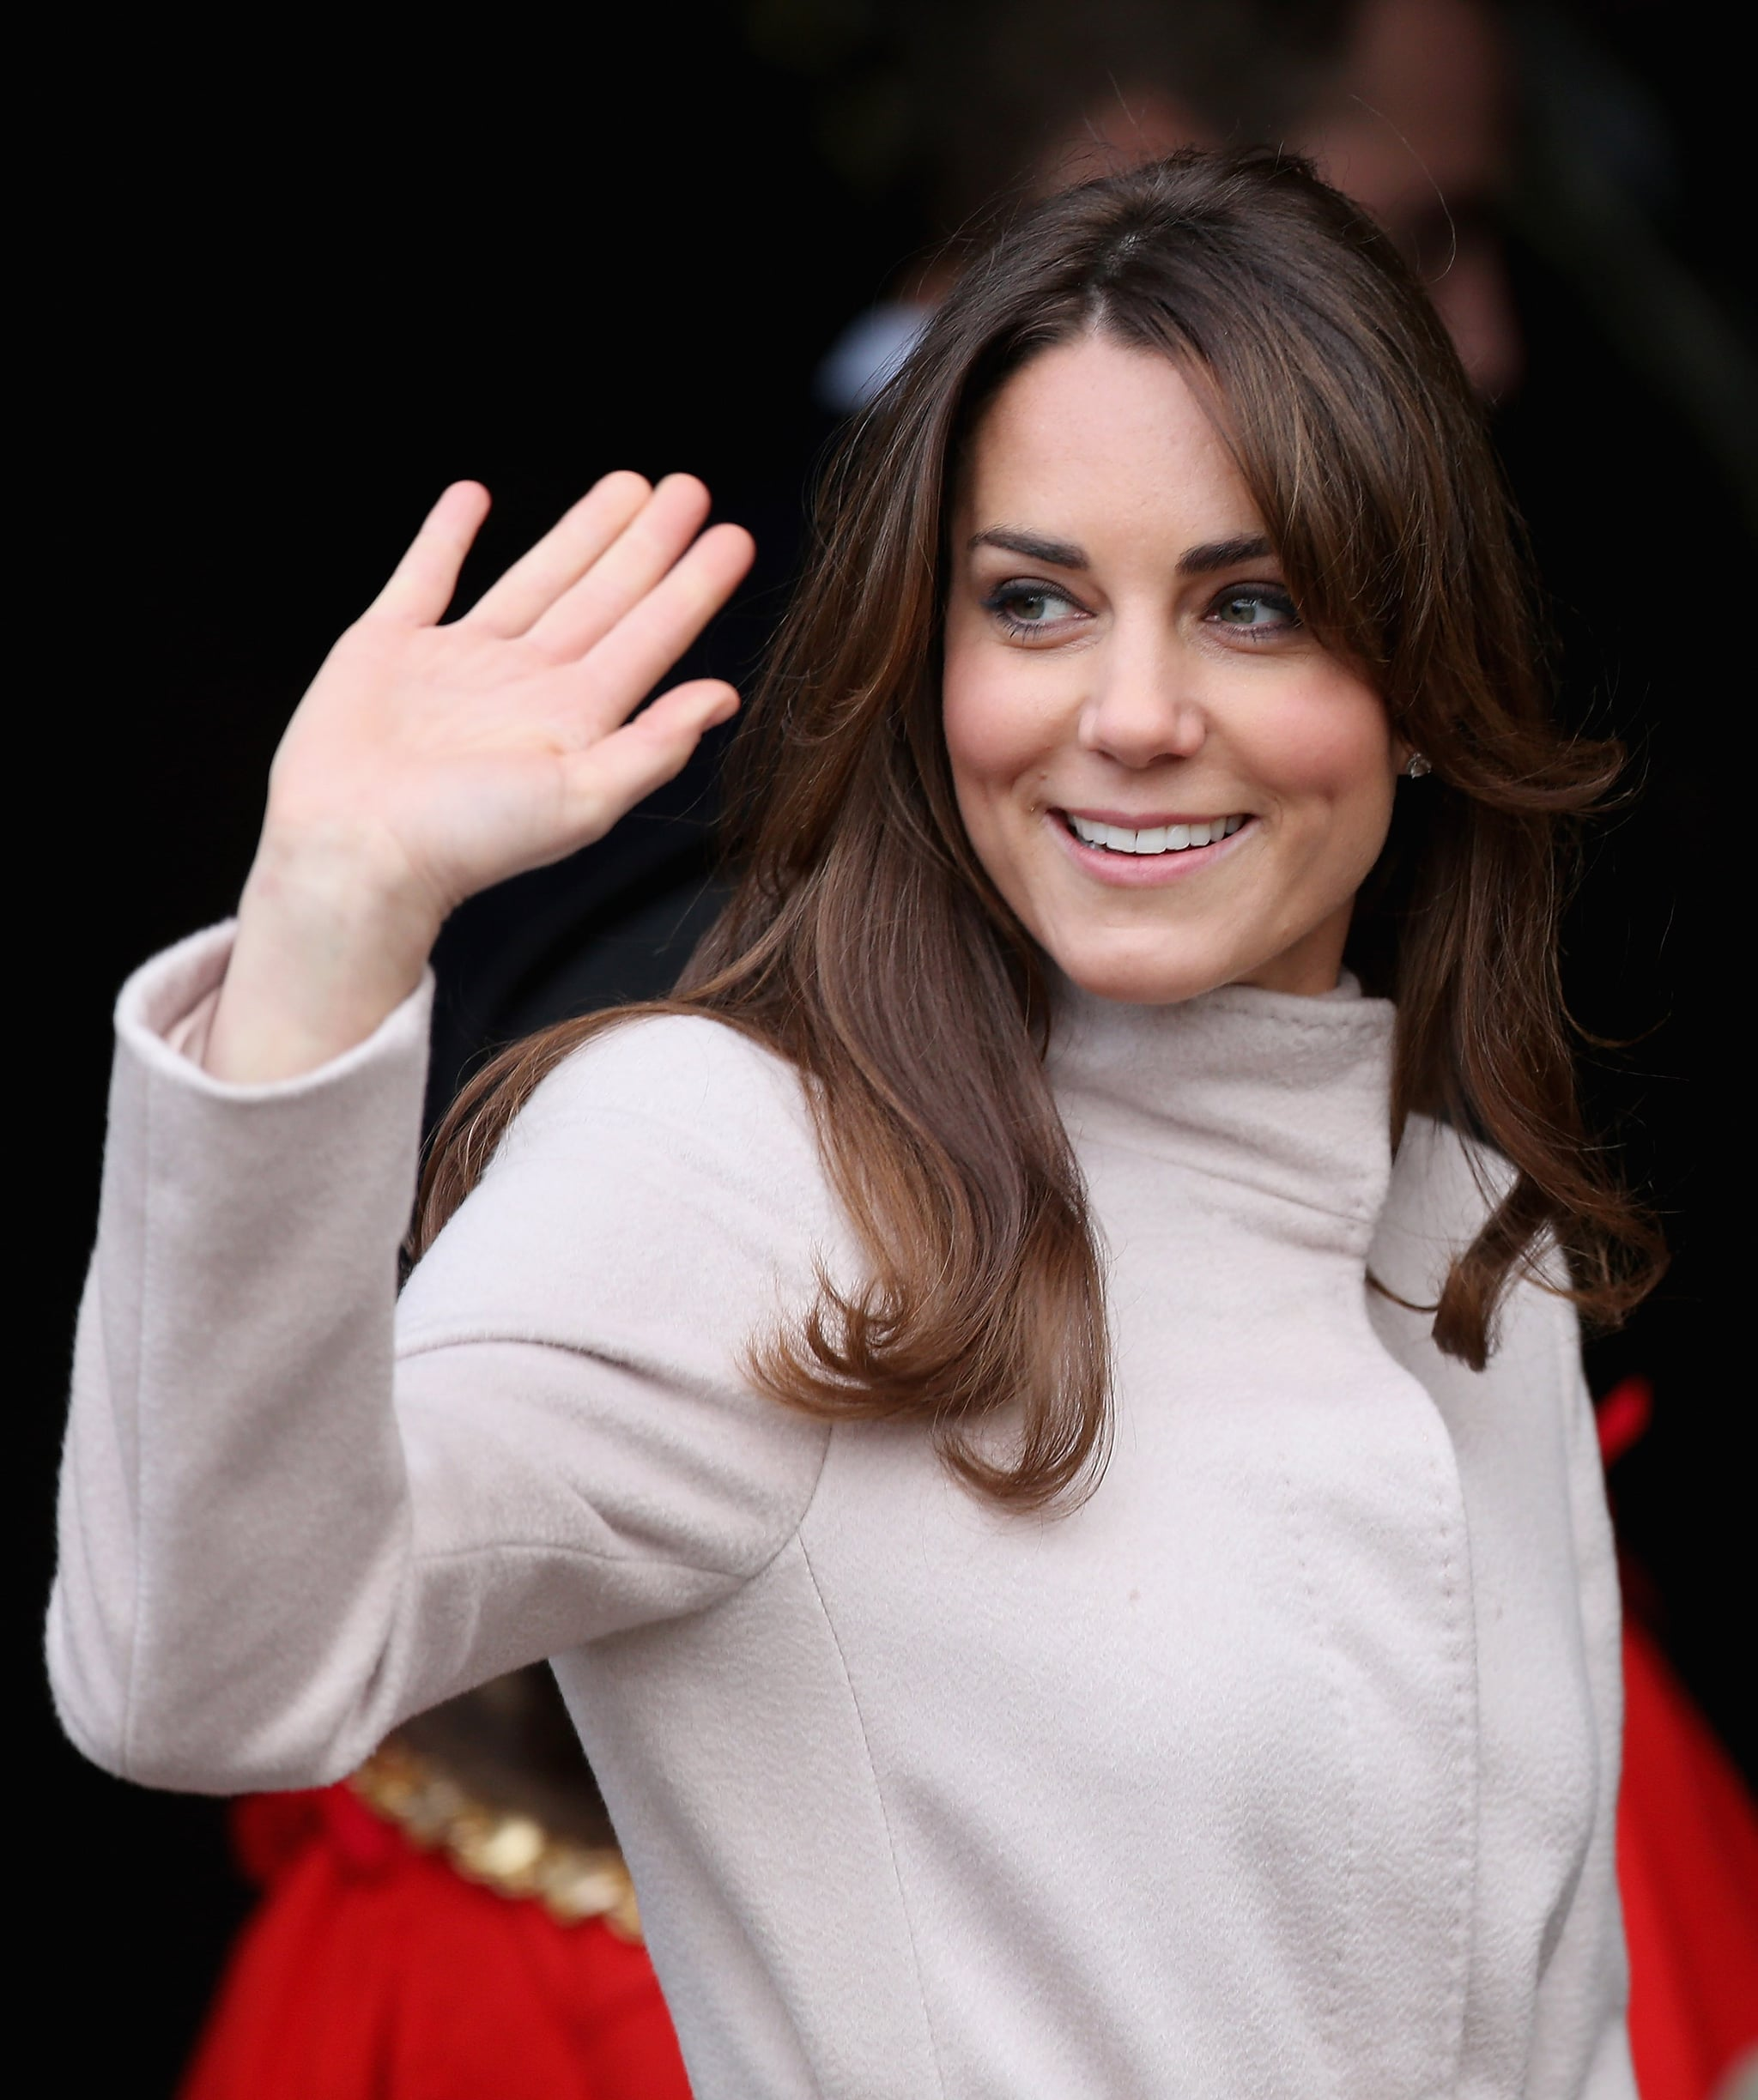 Kate Middleton gave a wave in Cambridge.